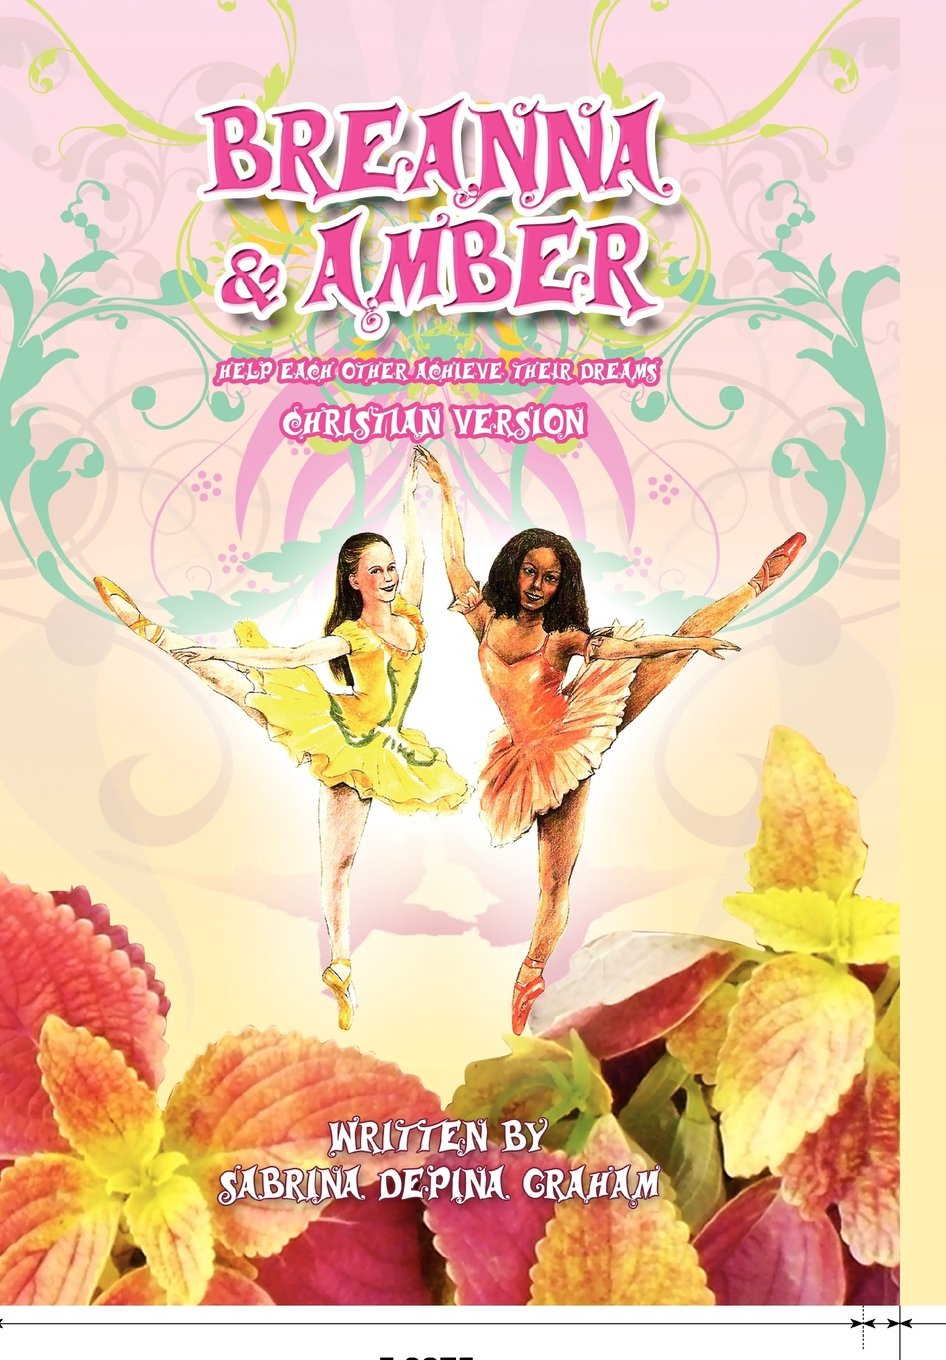 Download Breanna and Amber: Help Each Other Achieve Their Dreams (Christian Version) ebook